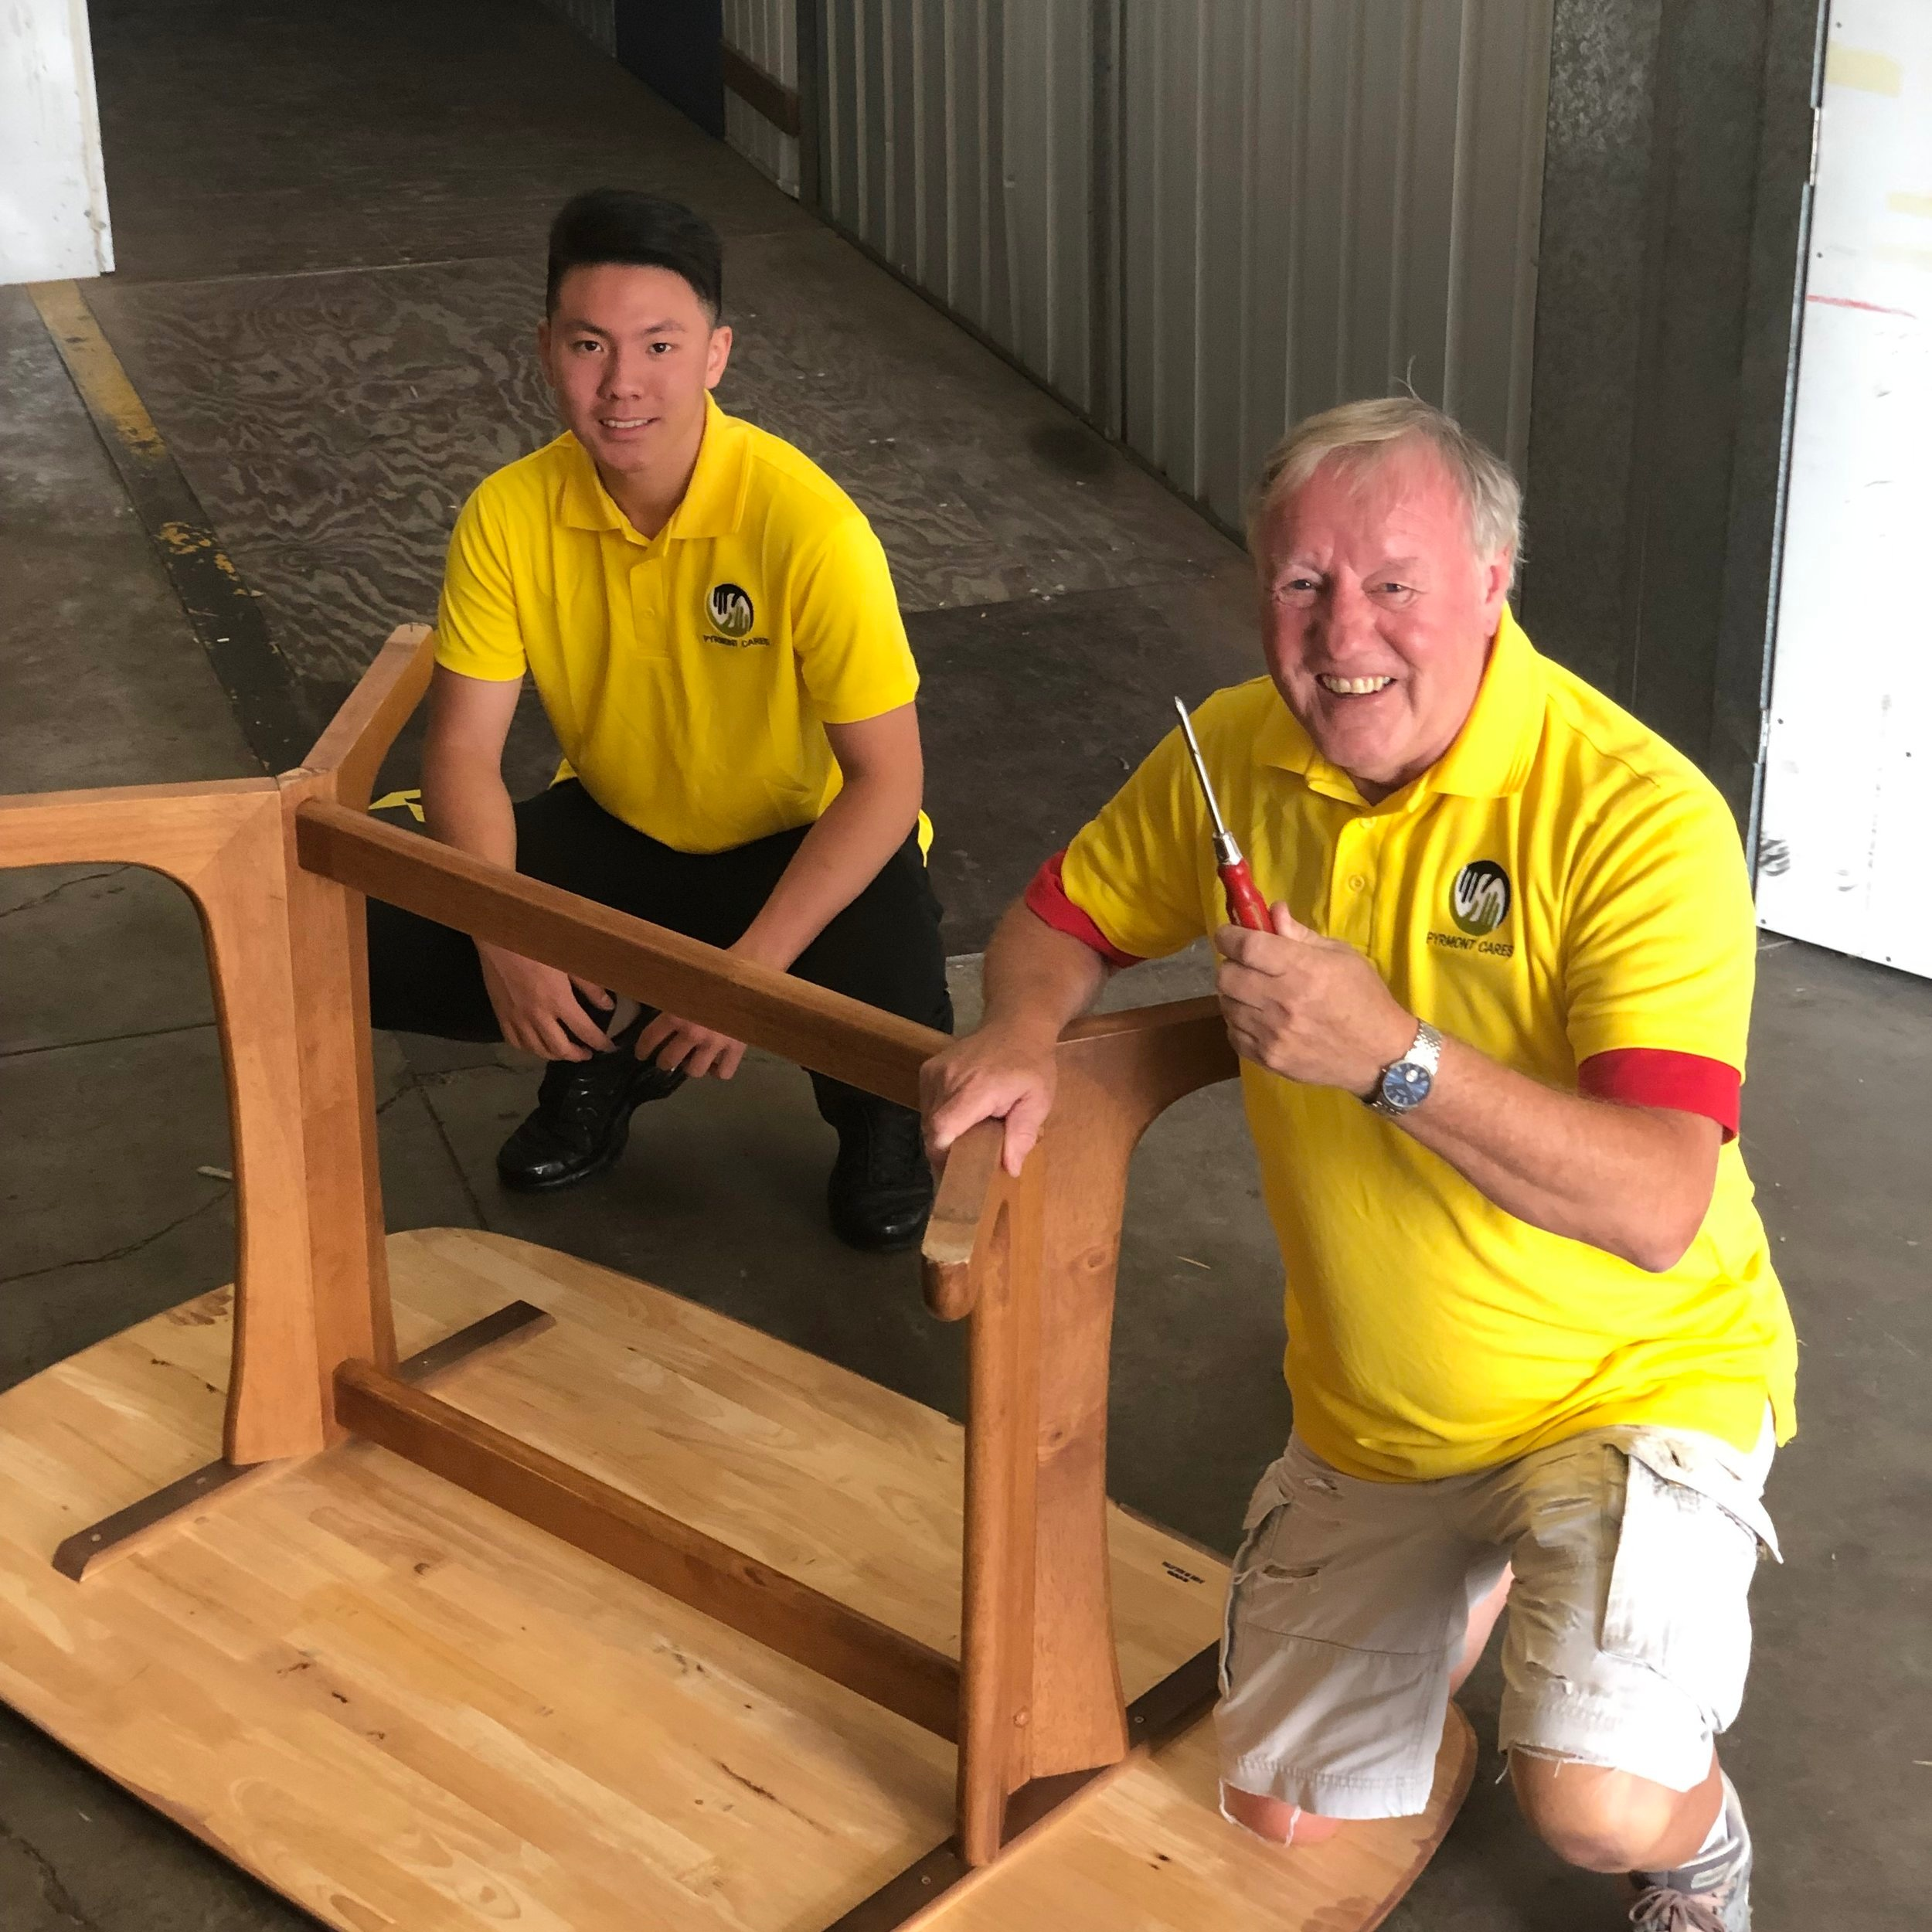 Volunteer Richard and Marcus assembling a table before dispatch.